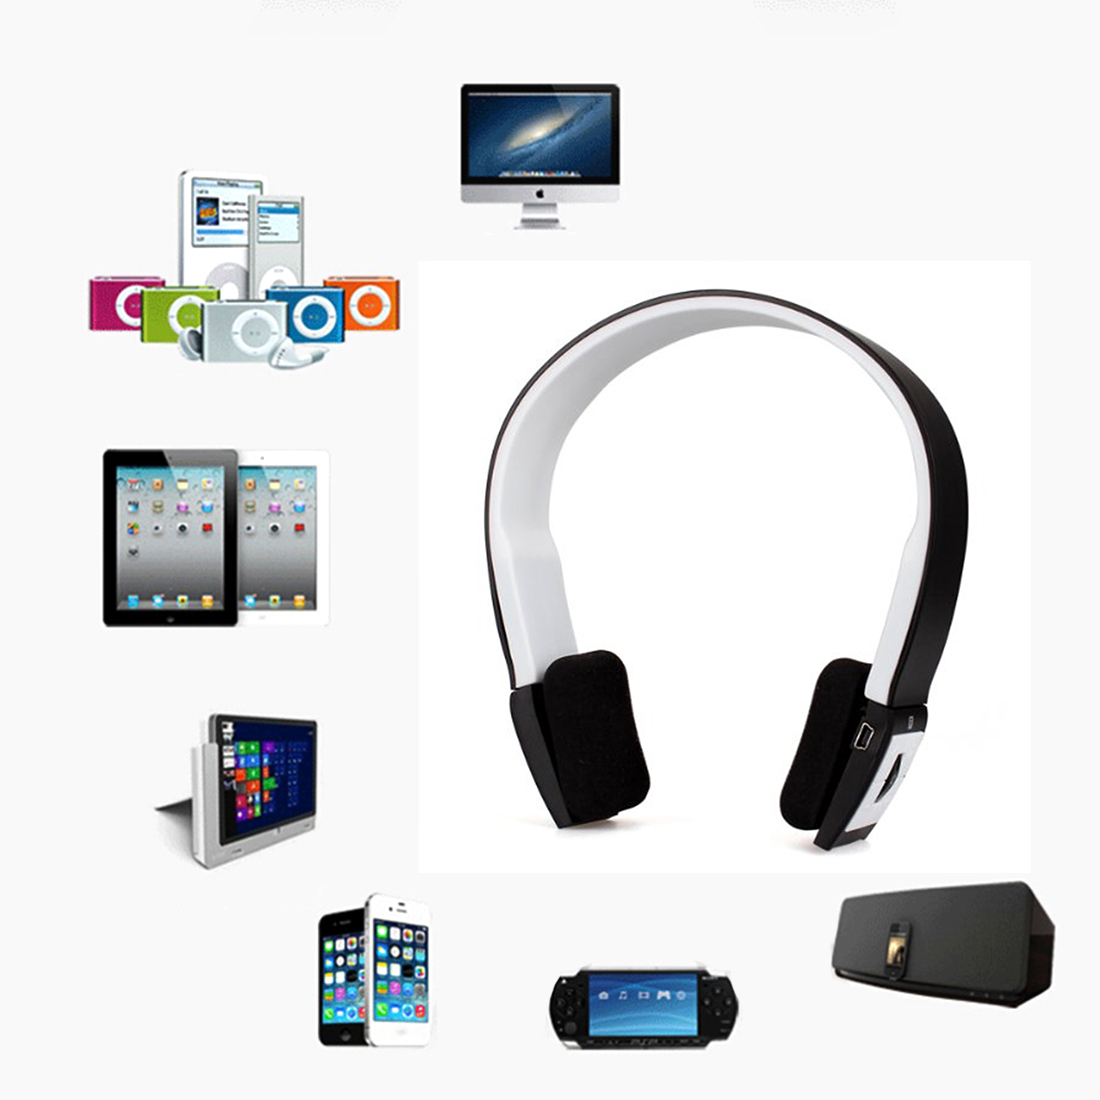 New Wireless Bluetooth Headphones Sports Stereo Headset Headphone +Mic for iPhone Mobile Phones Notebooks for Samsung Wholesale 50pcs lot original s9 bluetooth headset s9 sports headphones wireless headset for iphone android iso